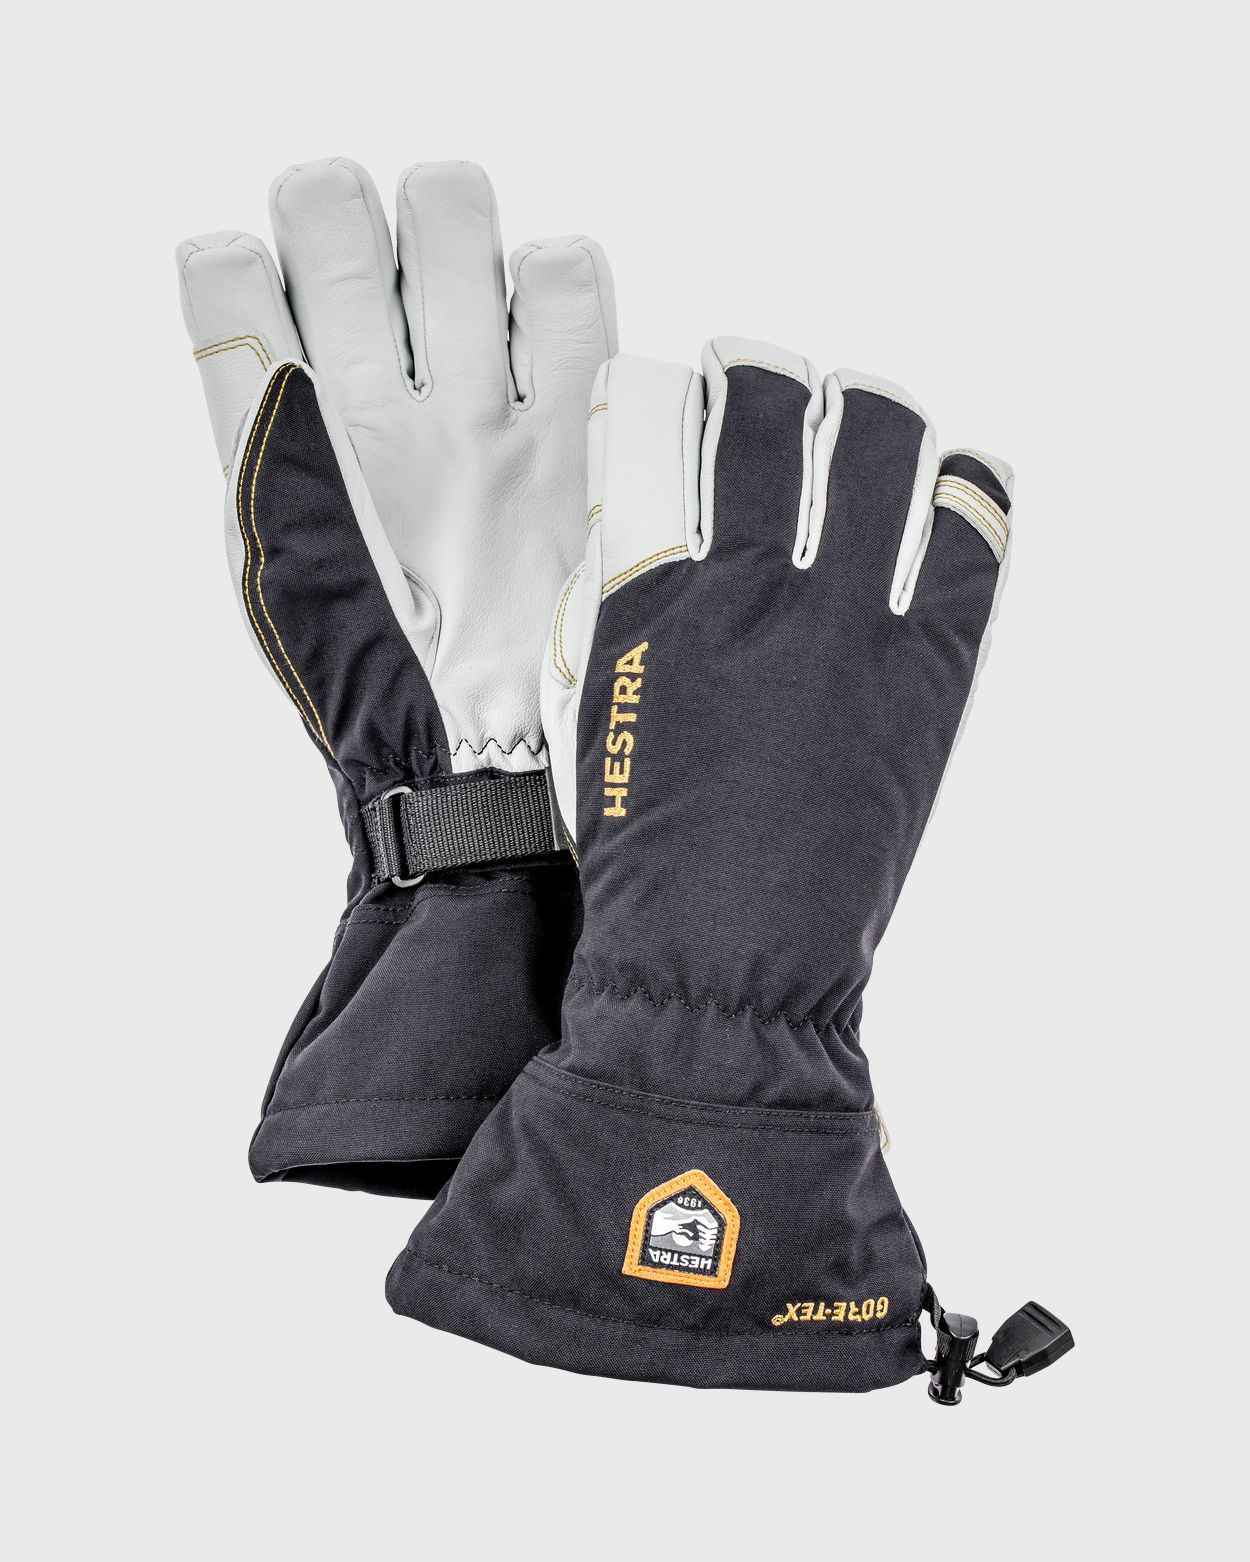 Army Leather Gore-Tex 5 finger Gloves Hestra Black/White 6